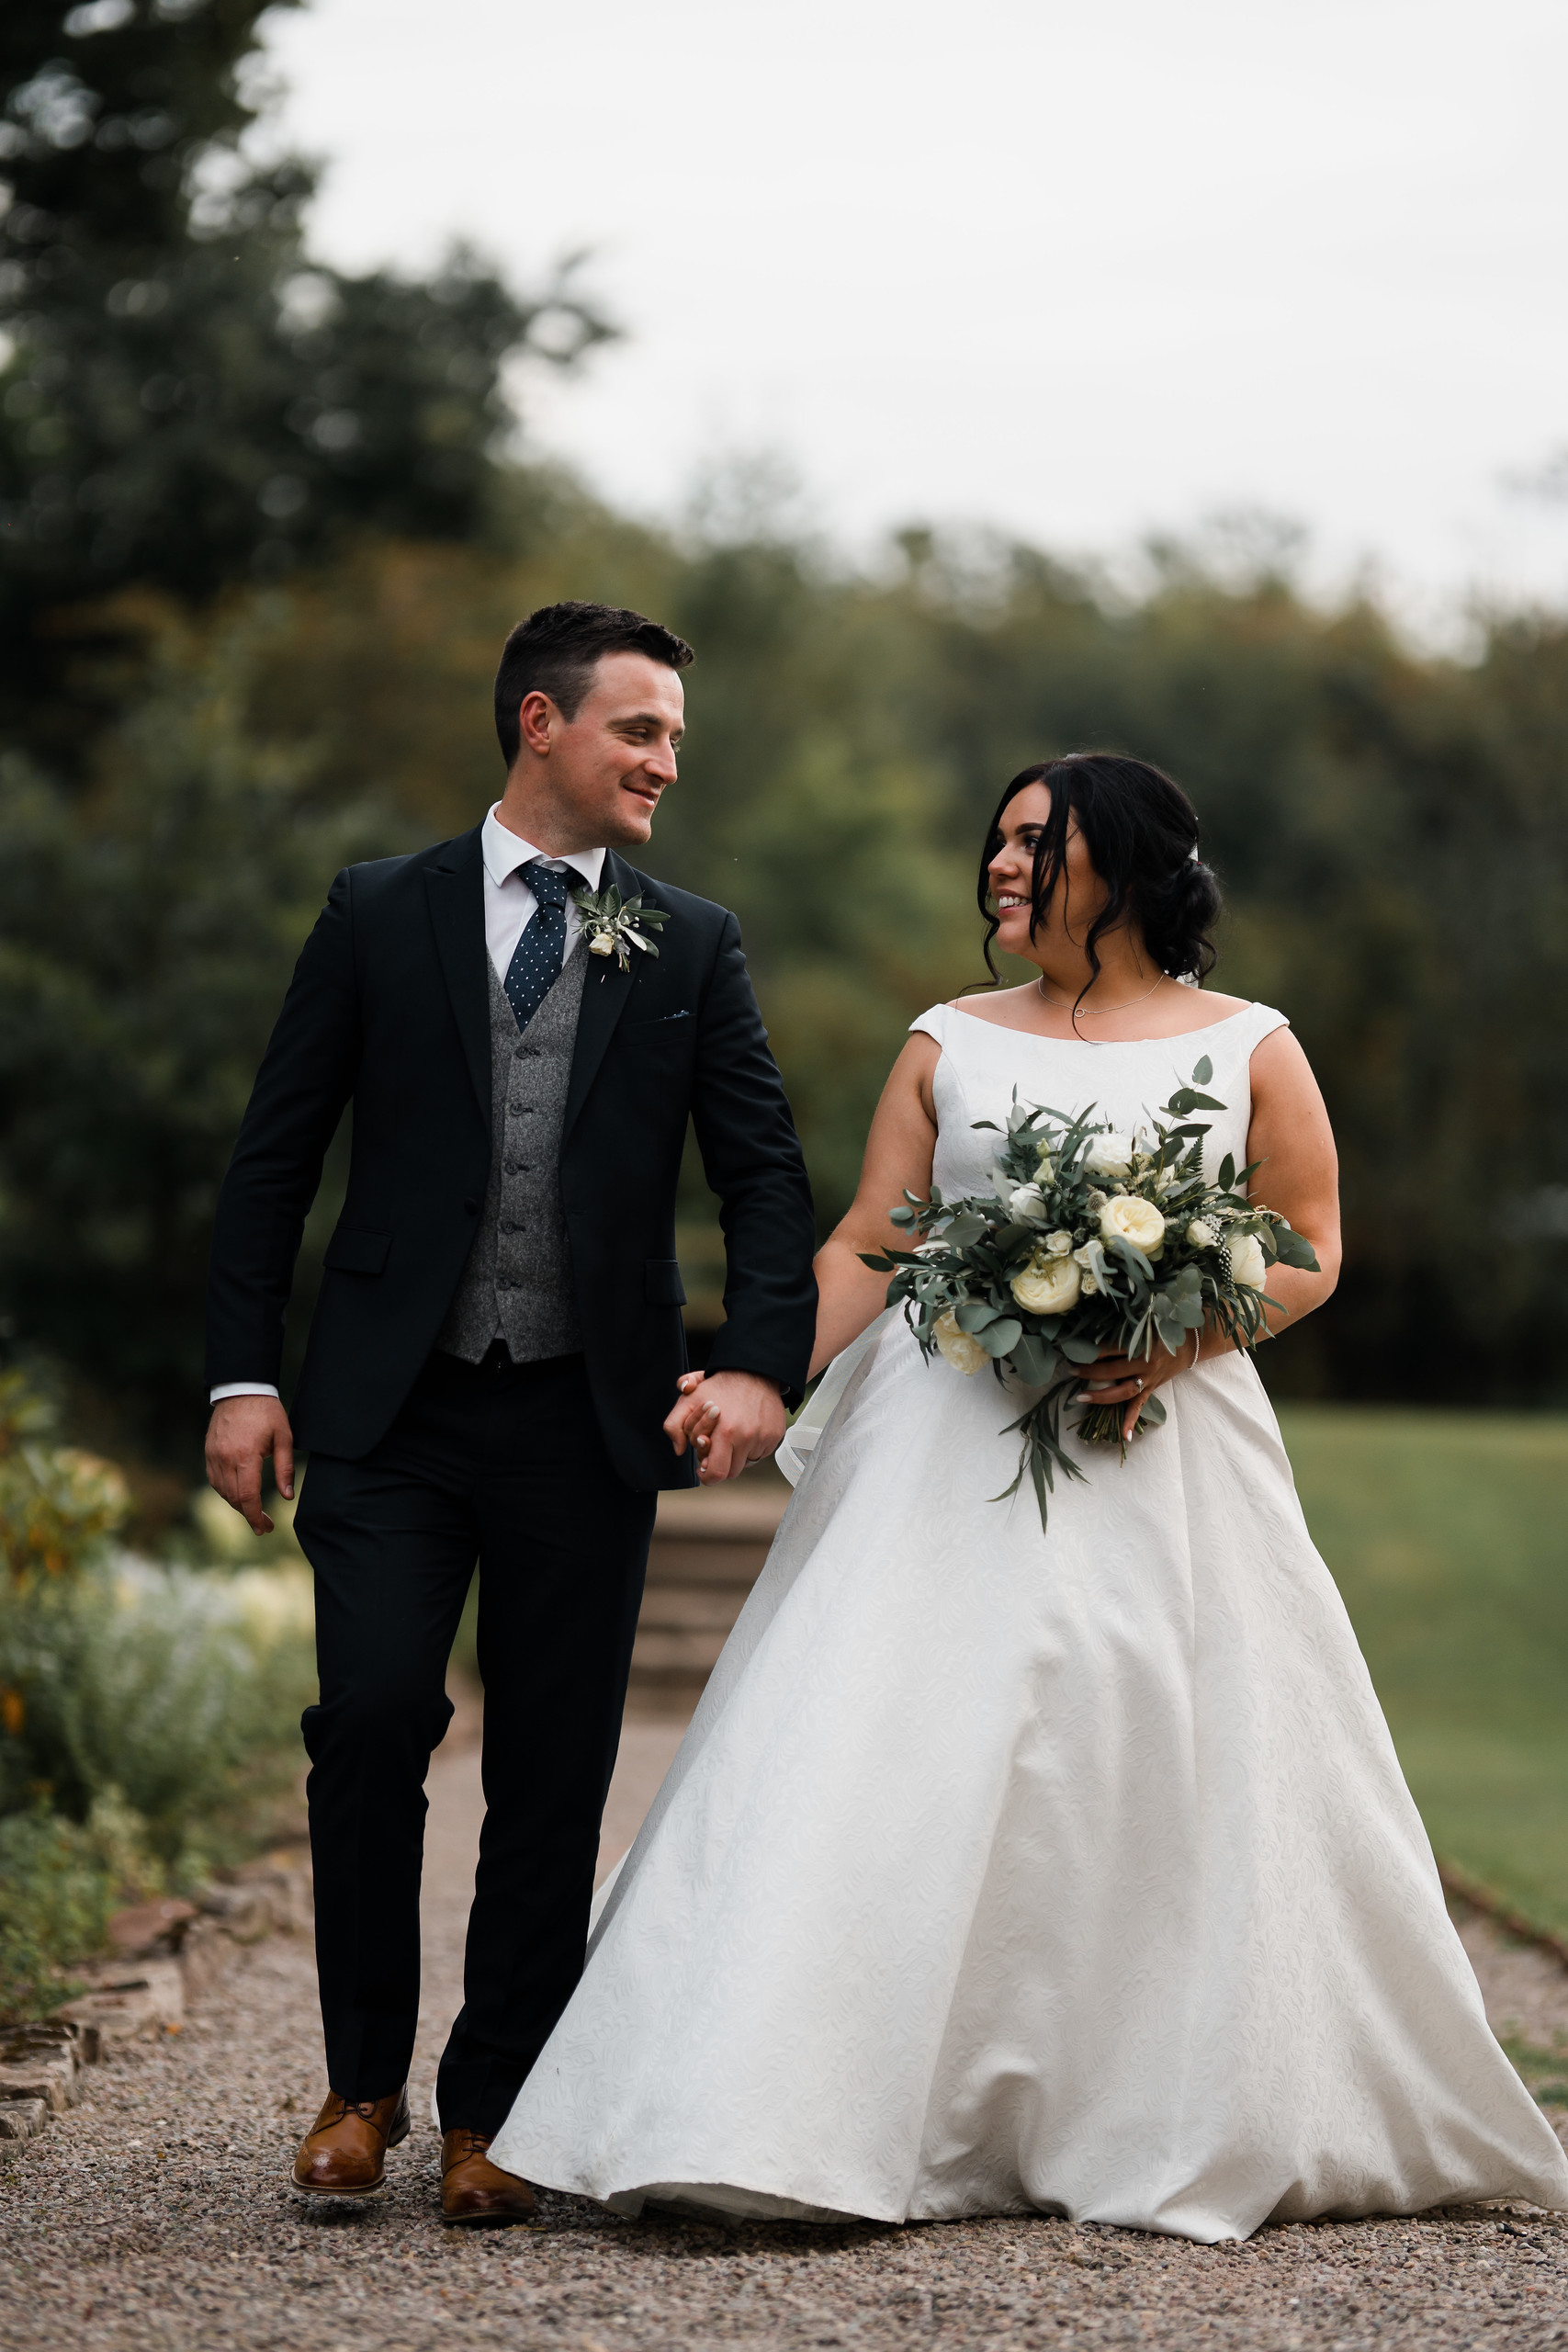 Bride and groom wedding photo full of smiles - Wedding photographers South Wales